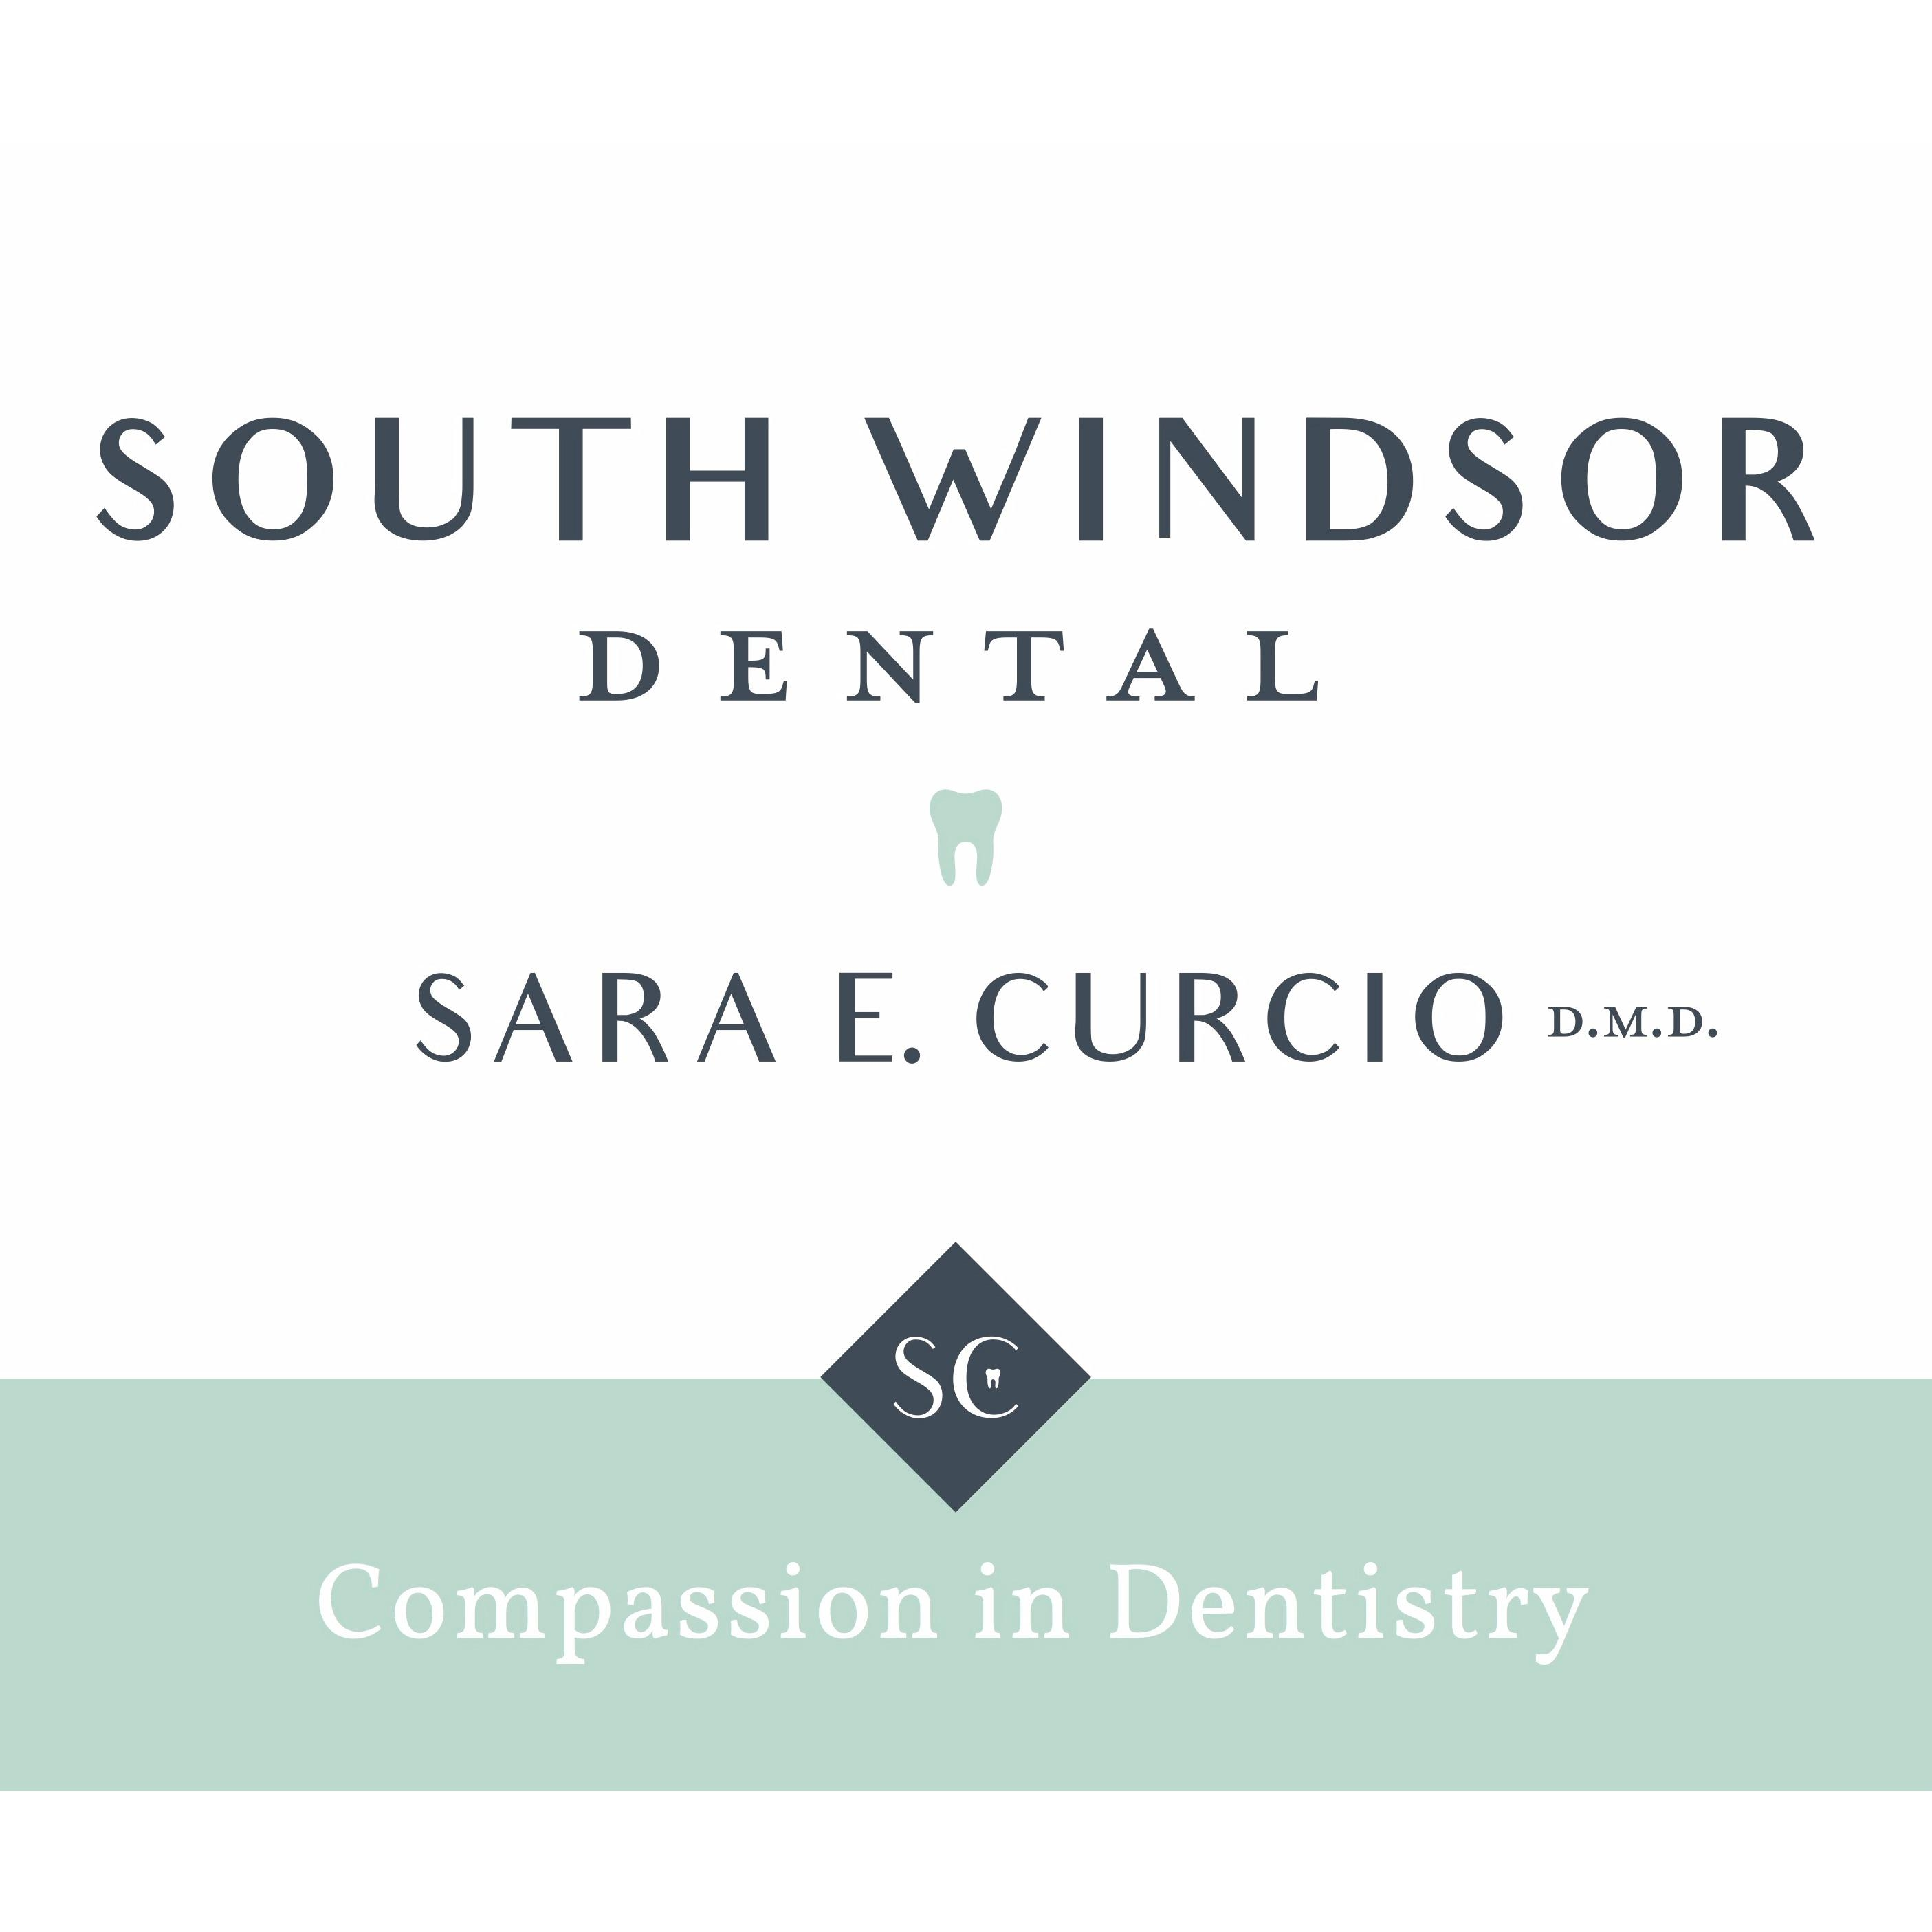 South Windsor Dental